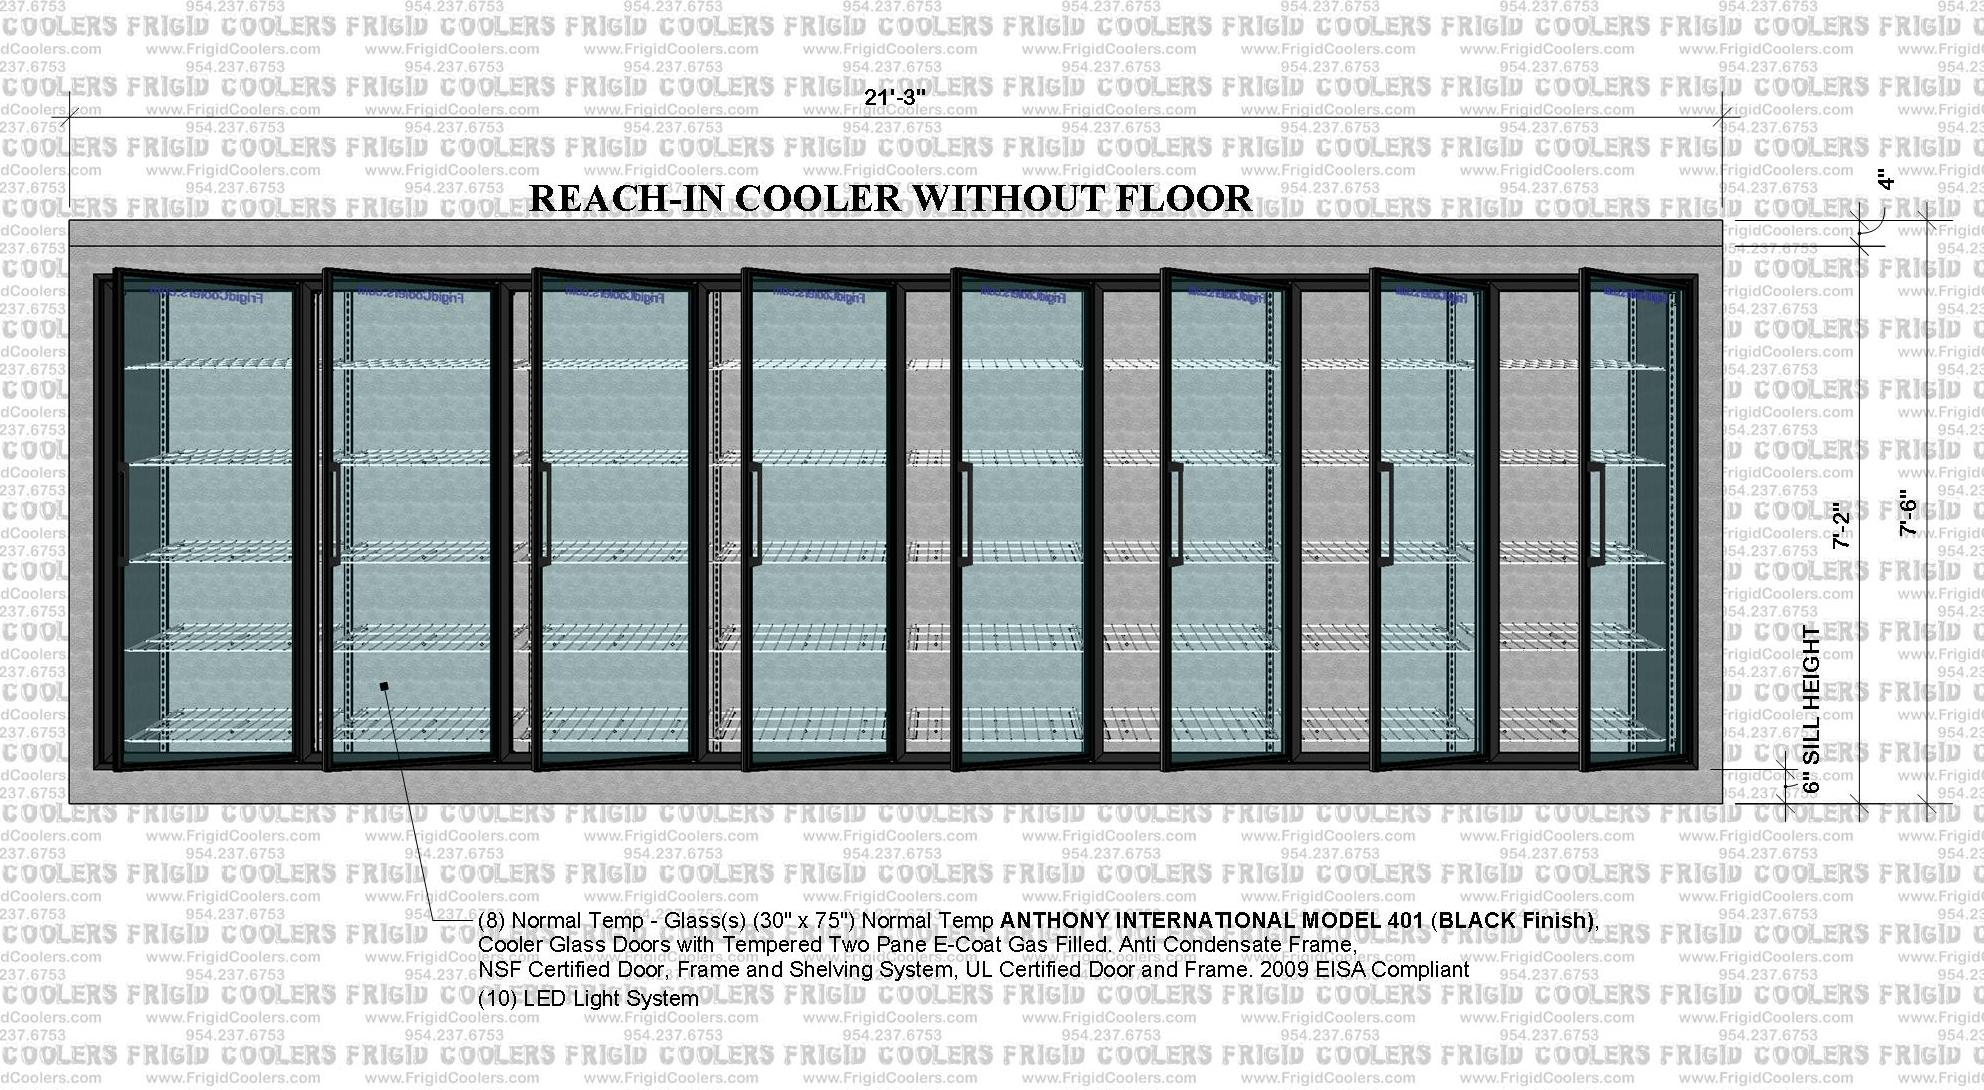 REACH-IN NO FLOOR 3-4X21-3X7-6 8 GDS (1)_2